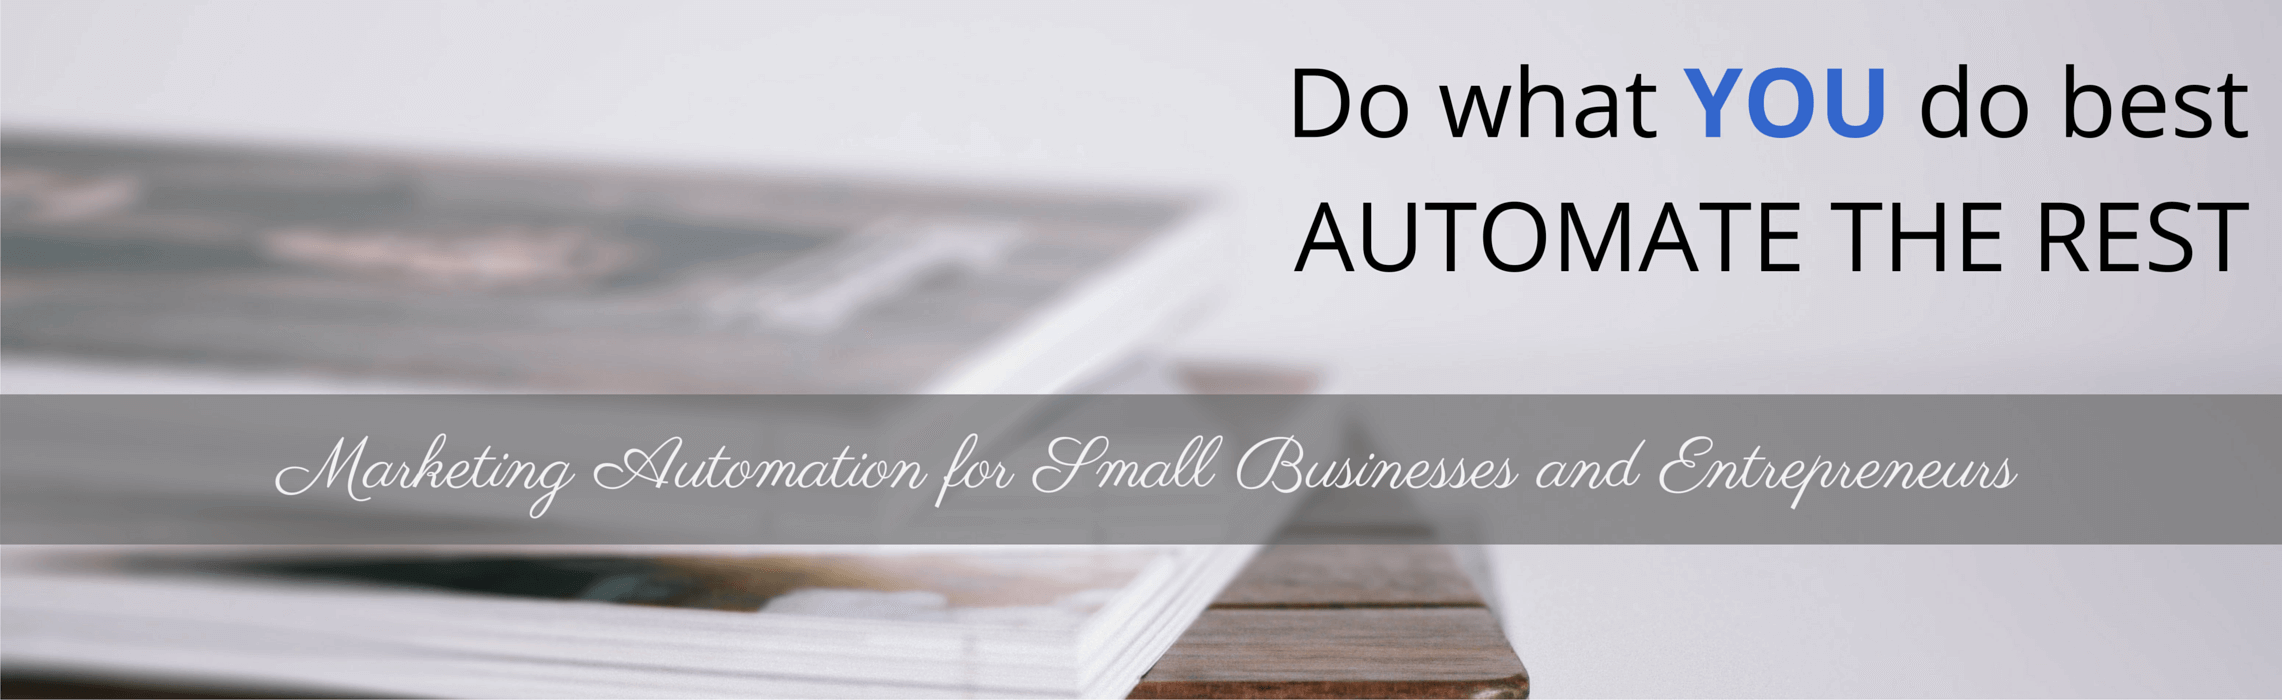 marketing automation for small businesses and solopreneurs